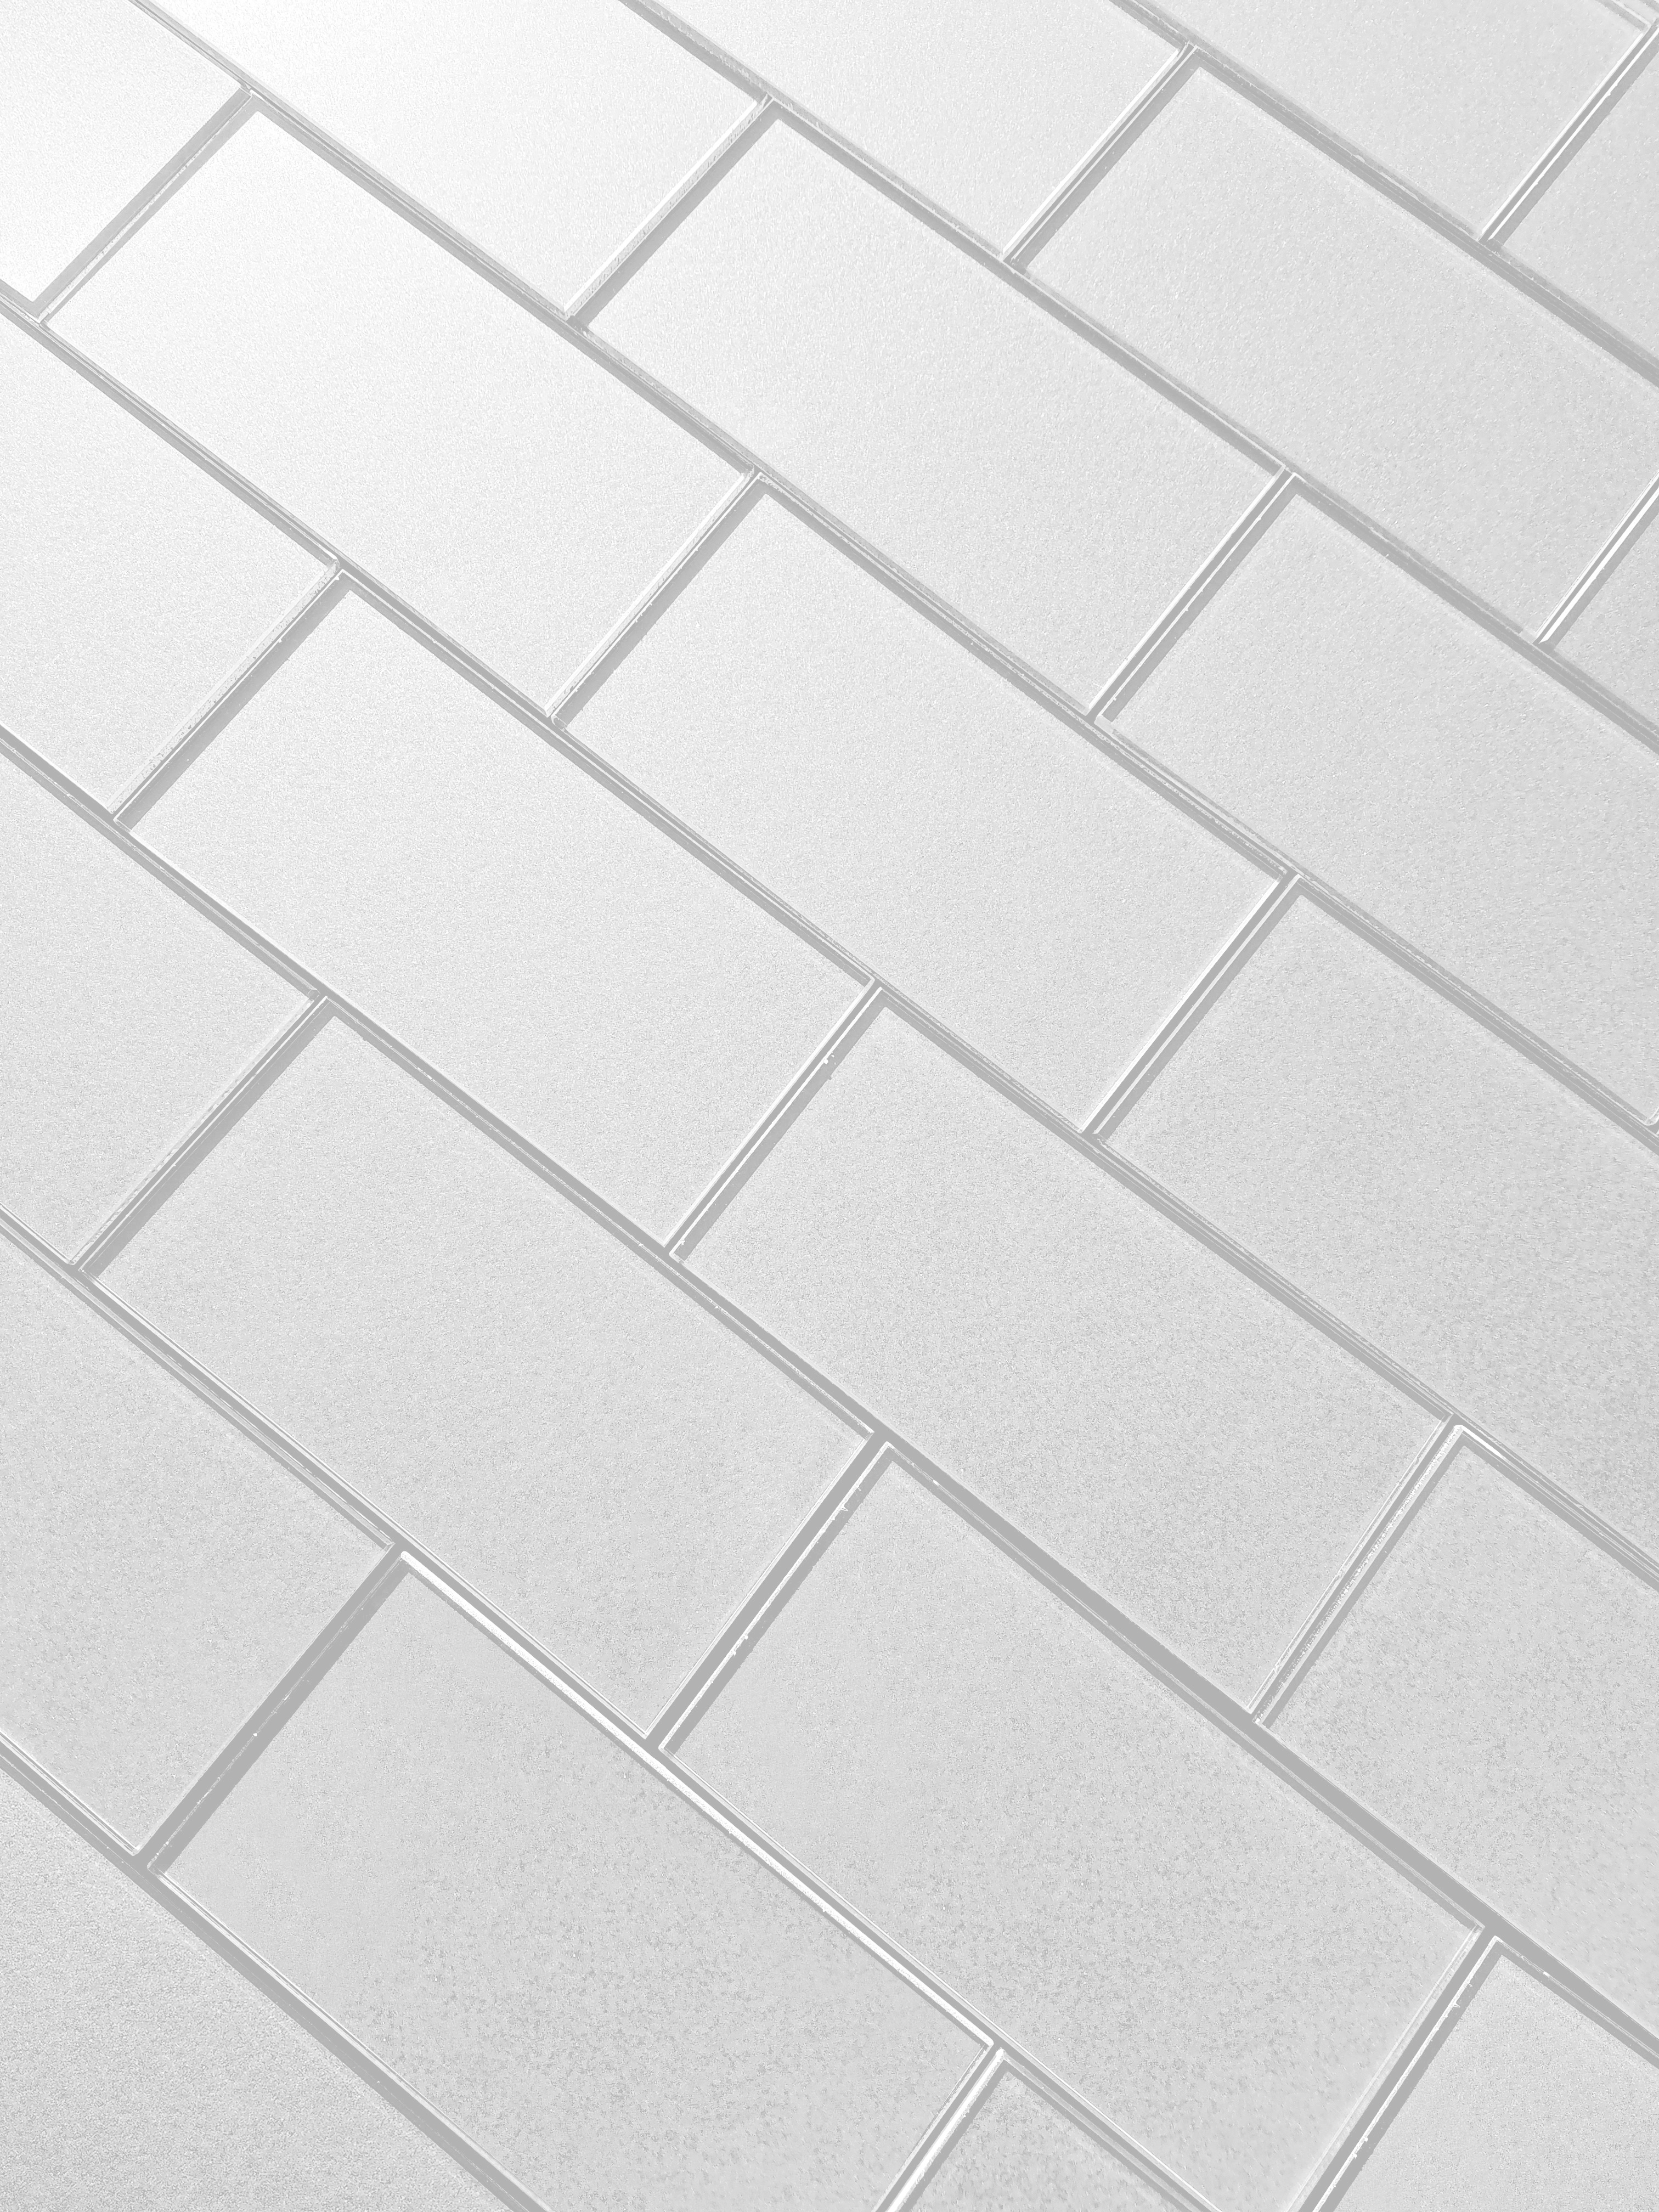 Forever 3 in x 6 in Glass Subway Tile in ETERNAL WHITE Glossy Straight